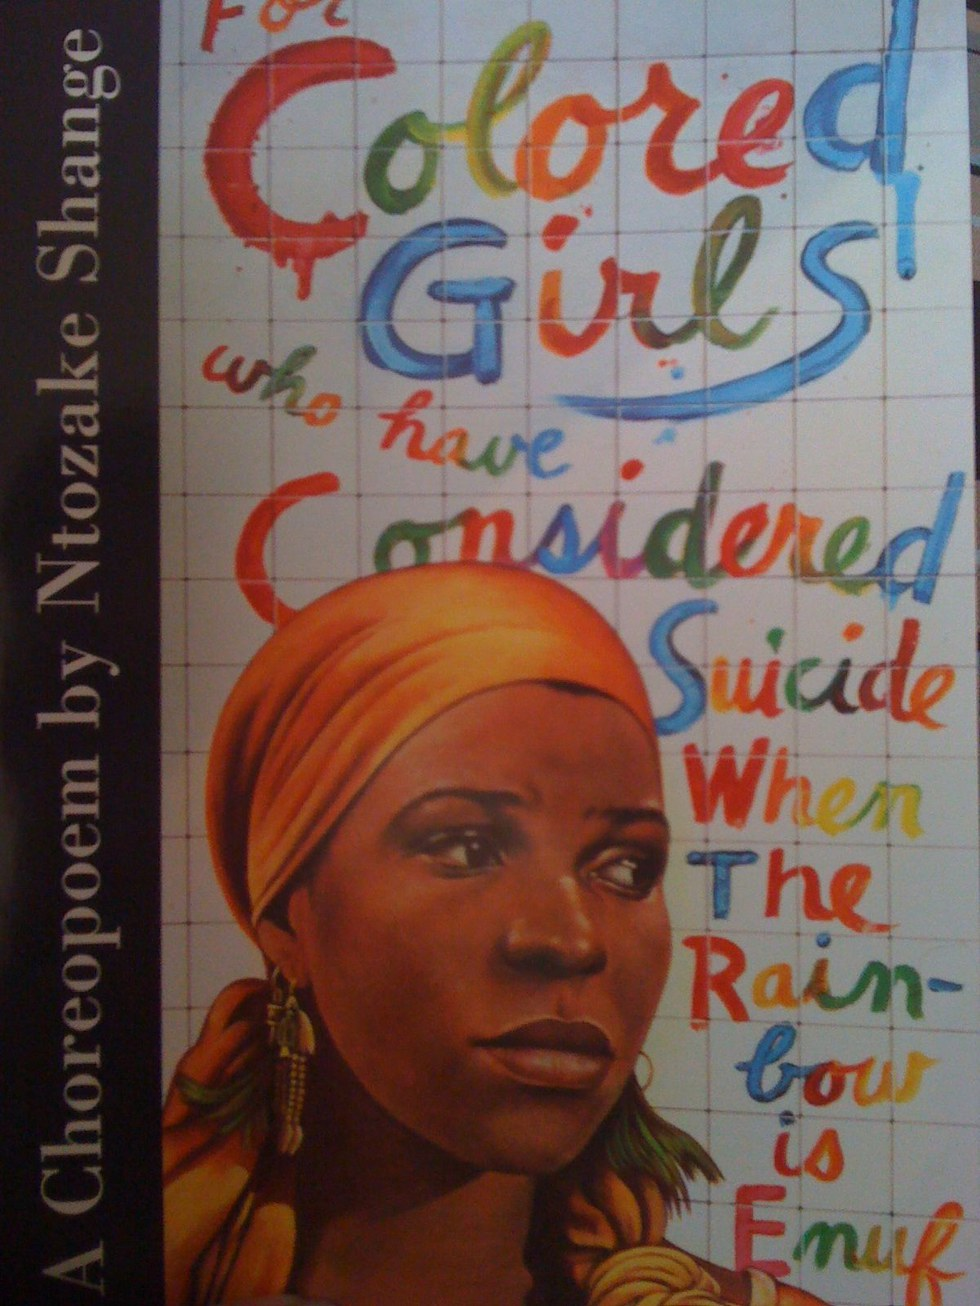 For Colored Girls Who Have Considered Suicide When The Rainbow Is Enuf by Ntozake Shange